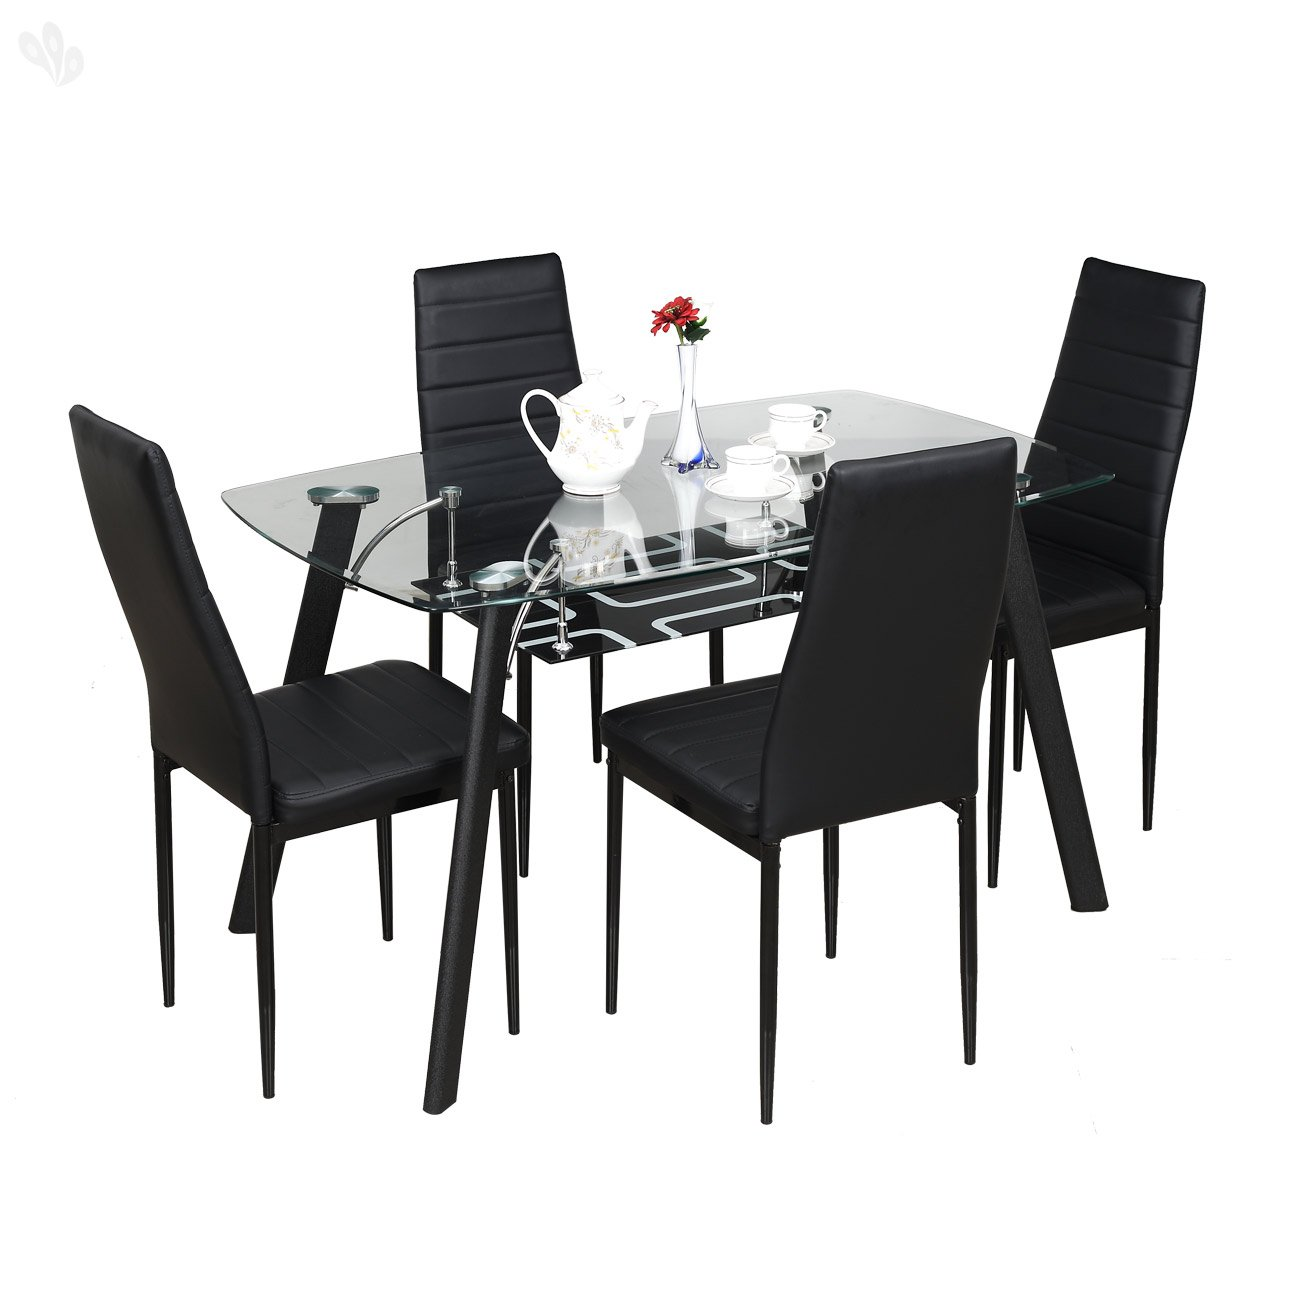 Royal Oak Milan Four Seater Dining Table Set Black Where Can I Buy The Best Furniture